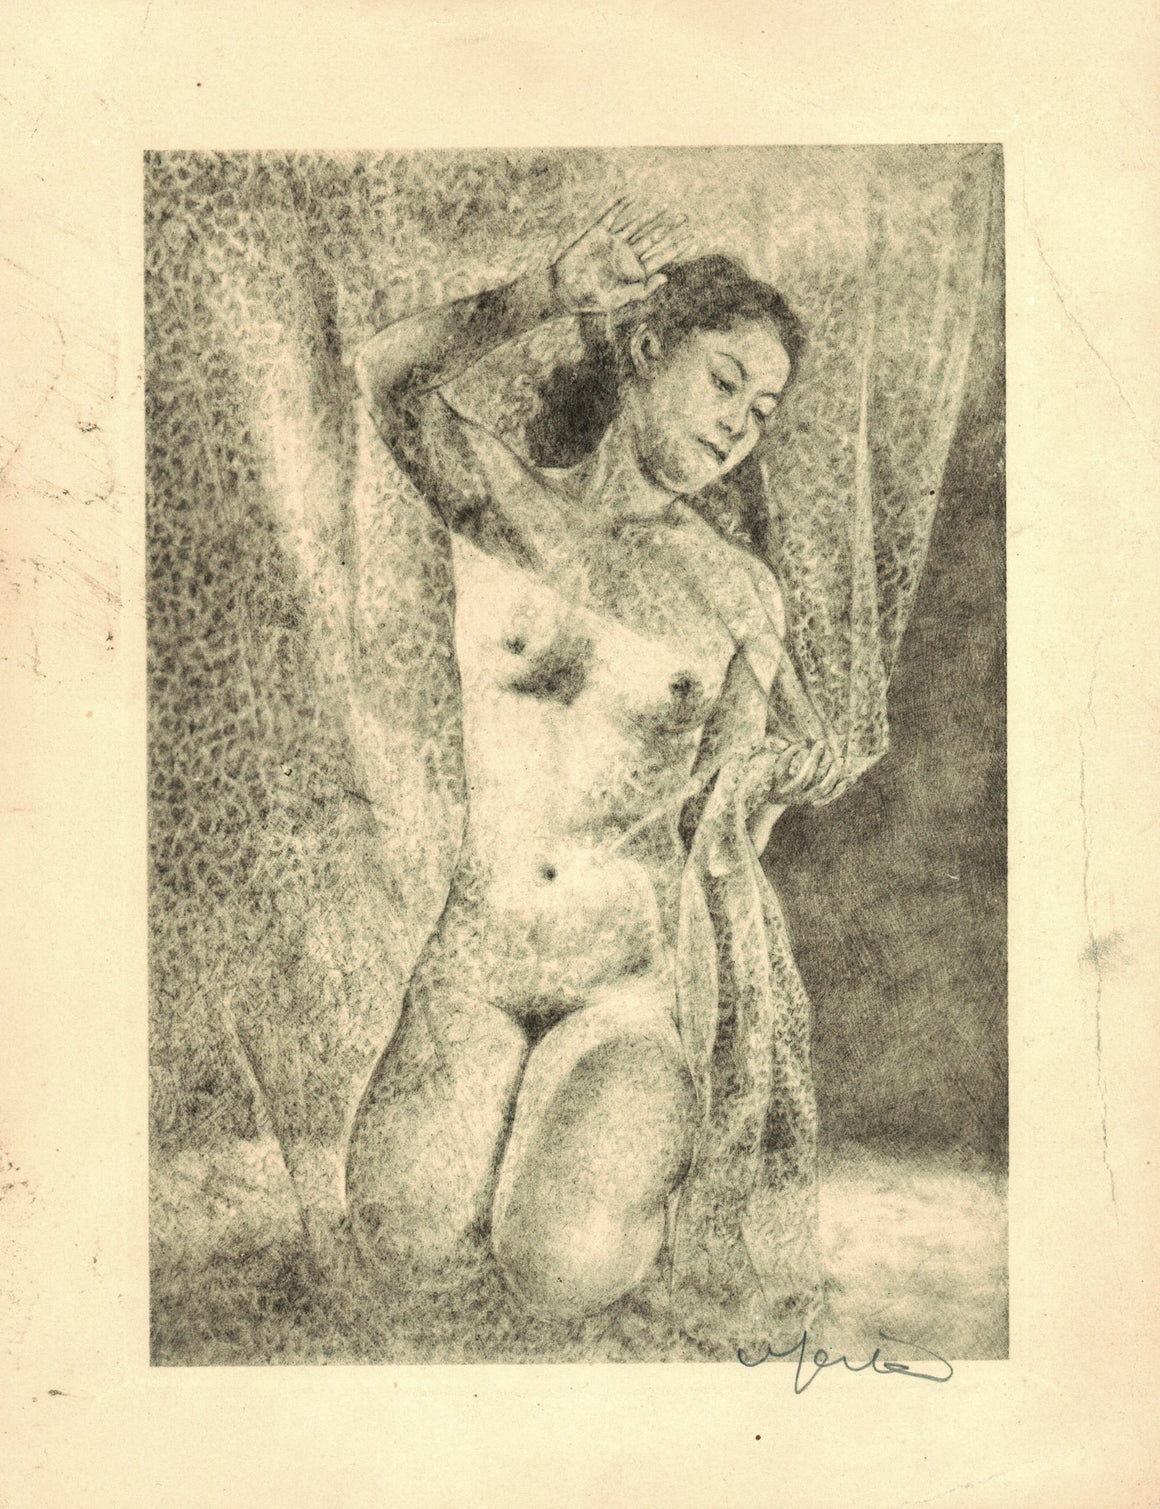 Willy Seiler - Young Nude Women - Signed Etching - c 1950